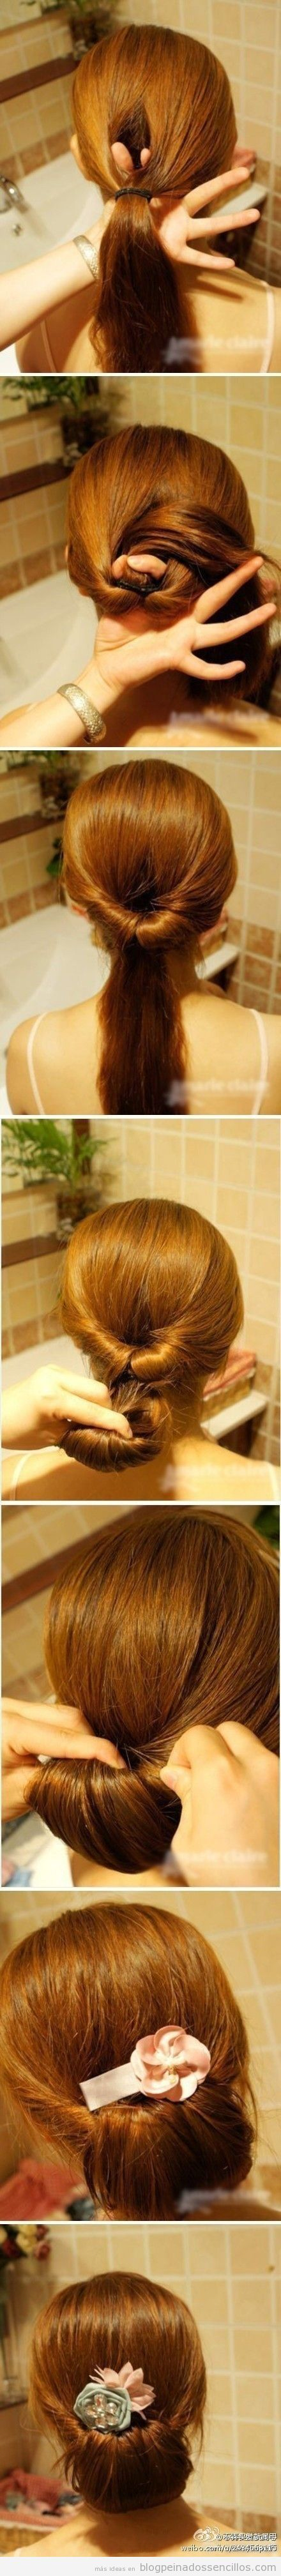 Twice passed chignon hair styles pinterest easy hairstyles